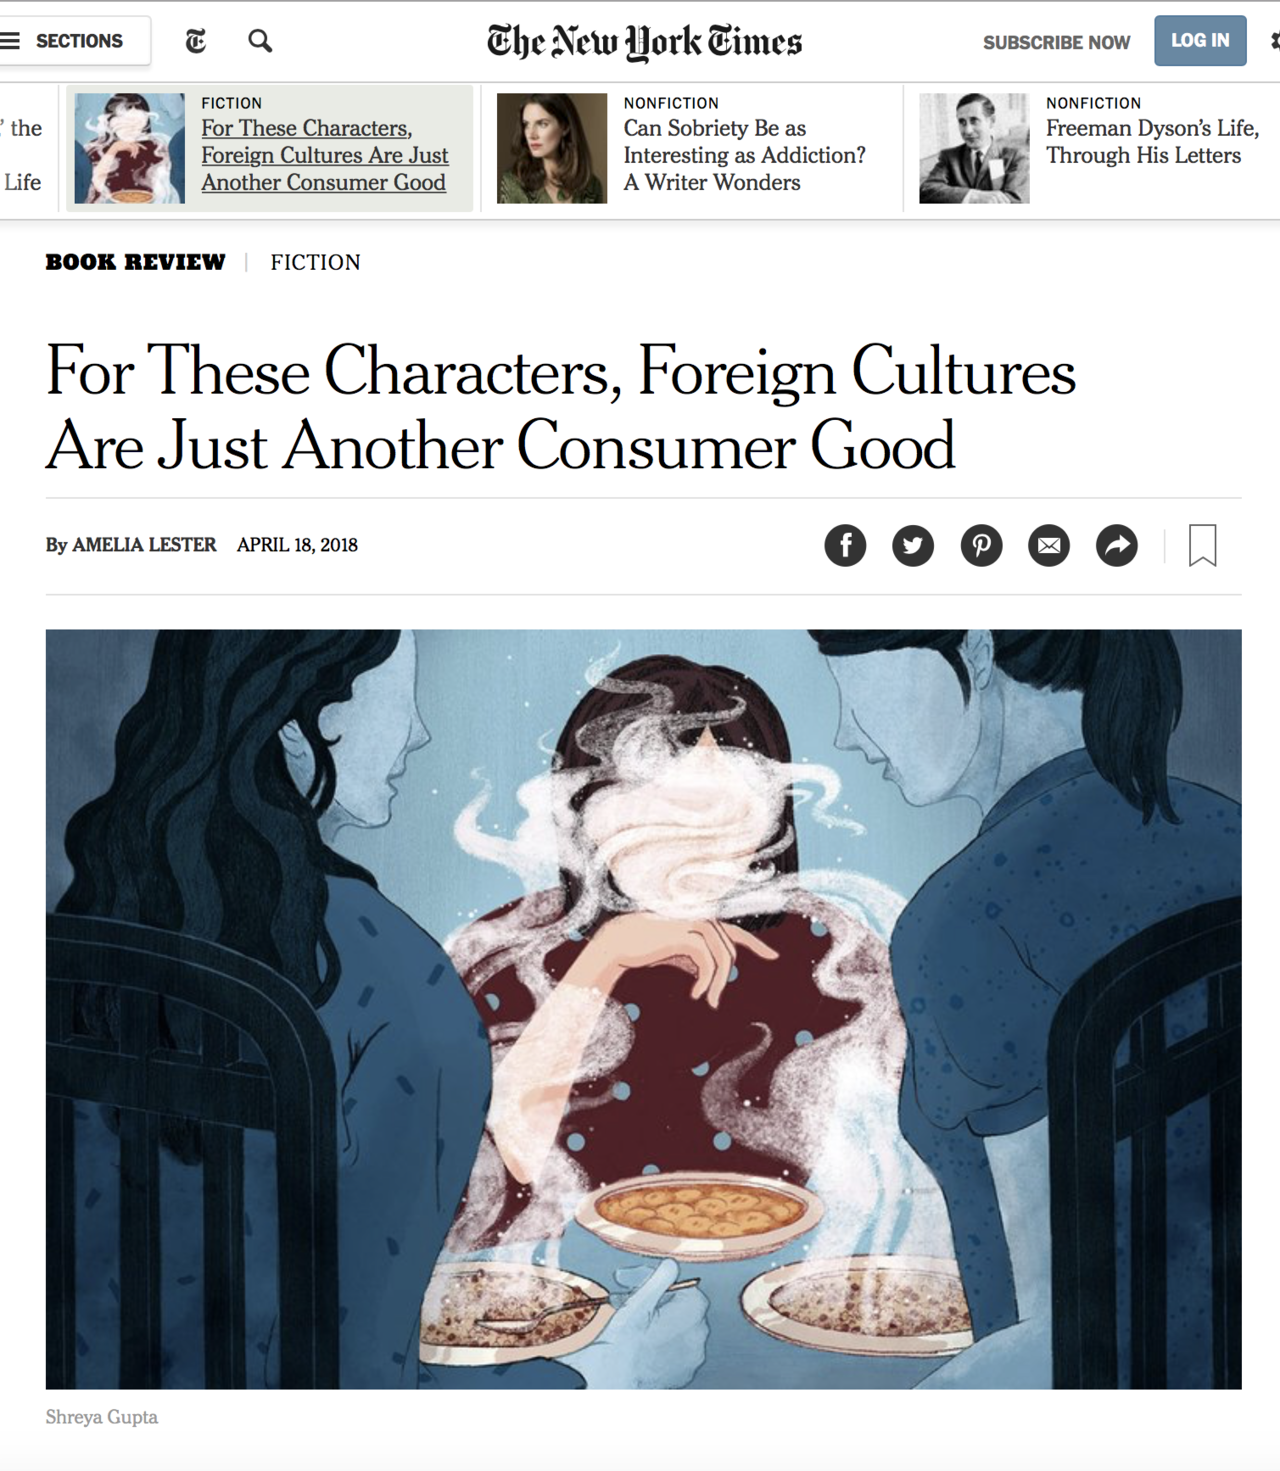 THE NEW YORK TIMES- THE LIFE TO COME